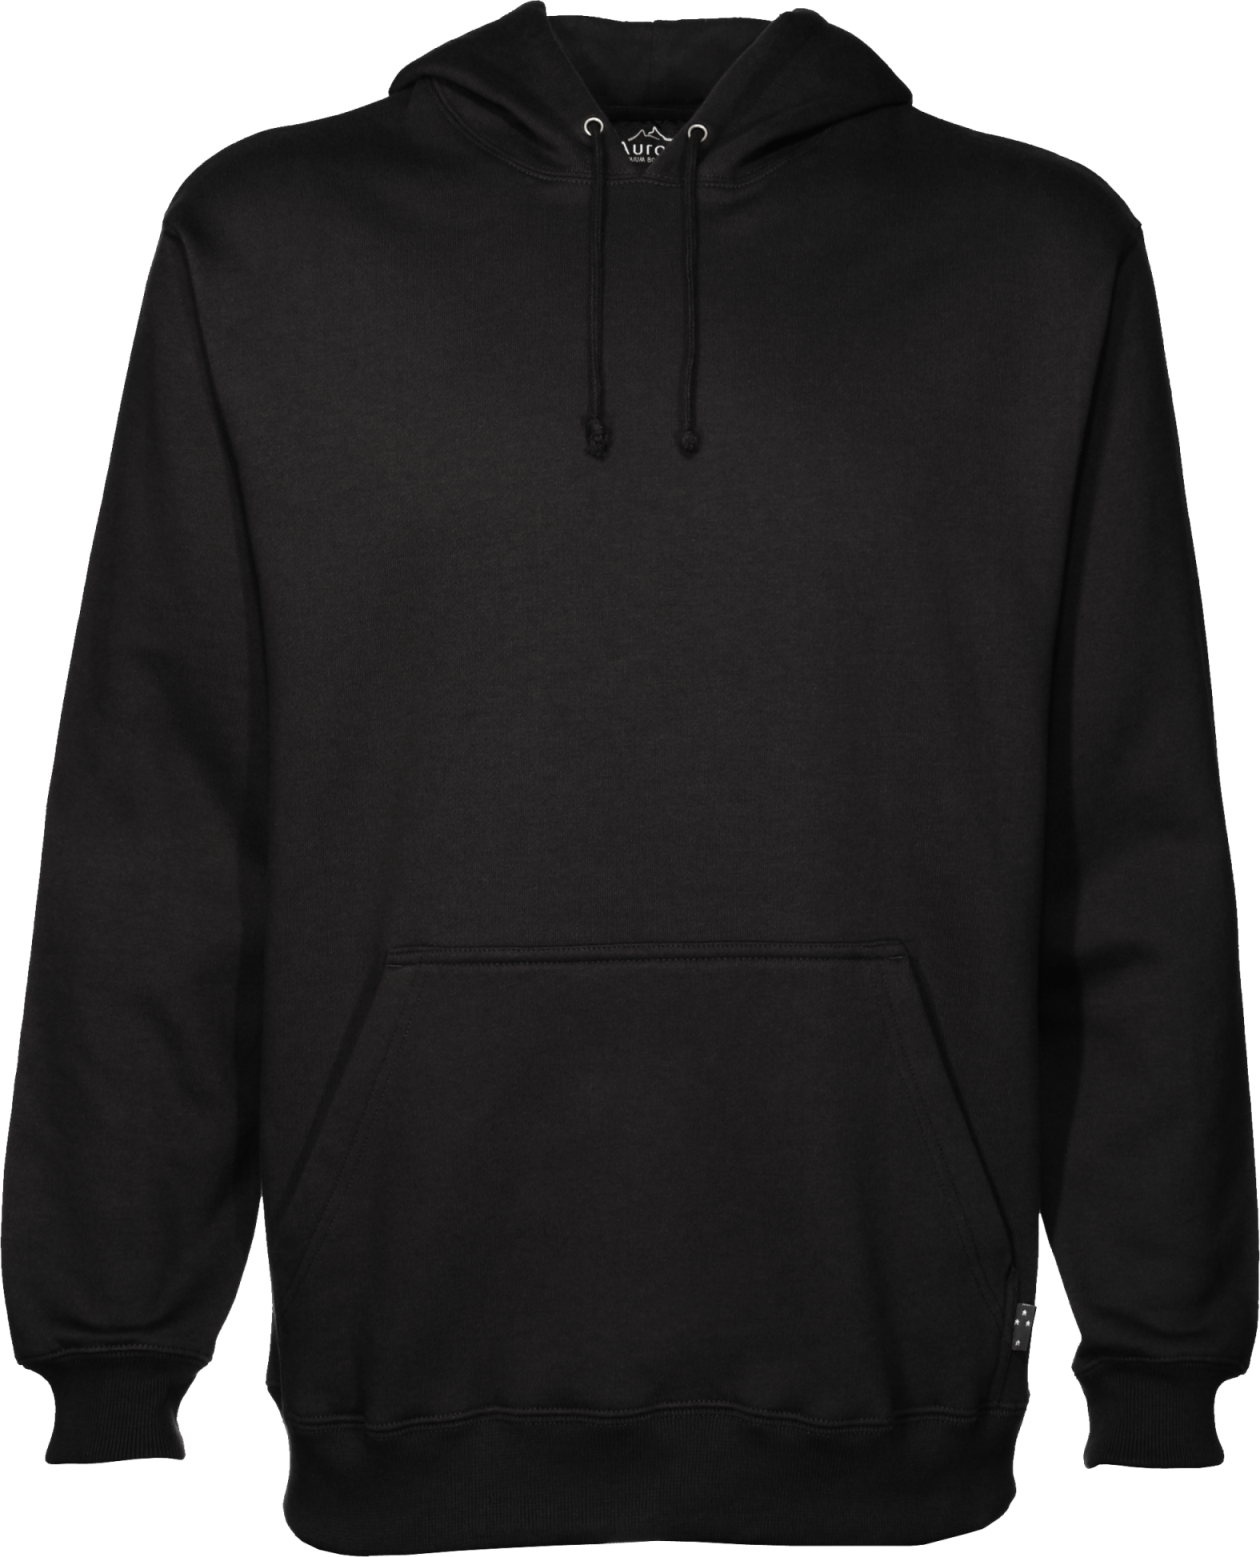 Hoodies & Sweatshirts. Shop guys hoodies and mens hoodies & sweatshirts at Zumiez. Huge selection of zip hoodies, pullover hoodies, crew neck sweatshirts, and solid hoodies from brands like Diamond, Volcom, & Obey. Free shipping everyday.